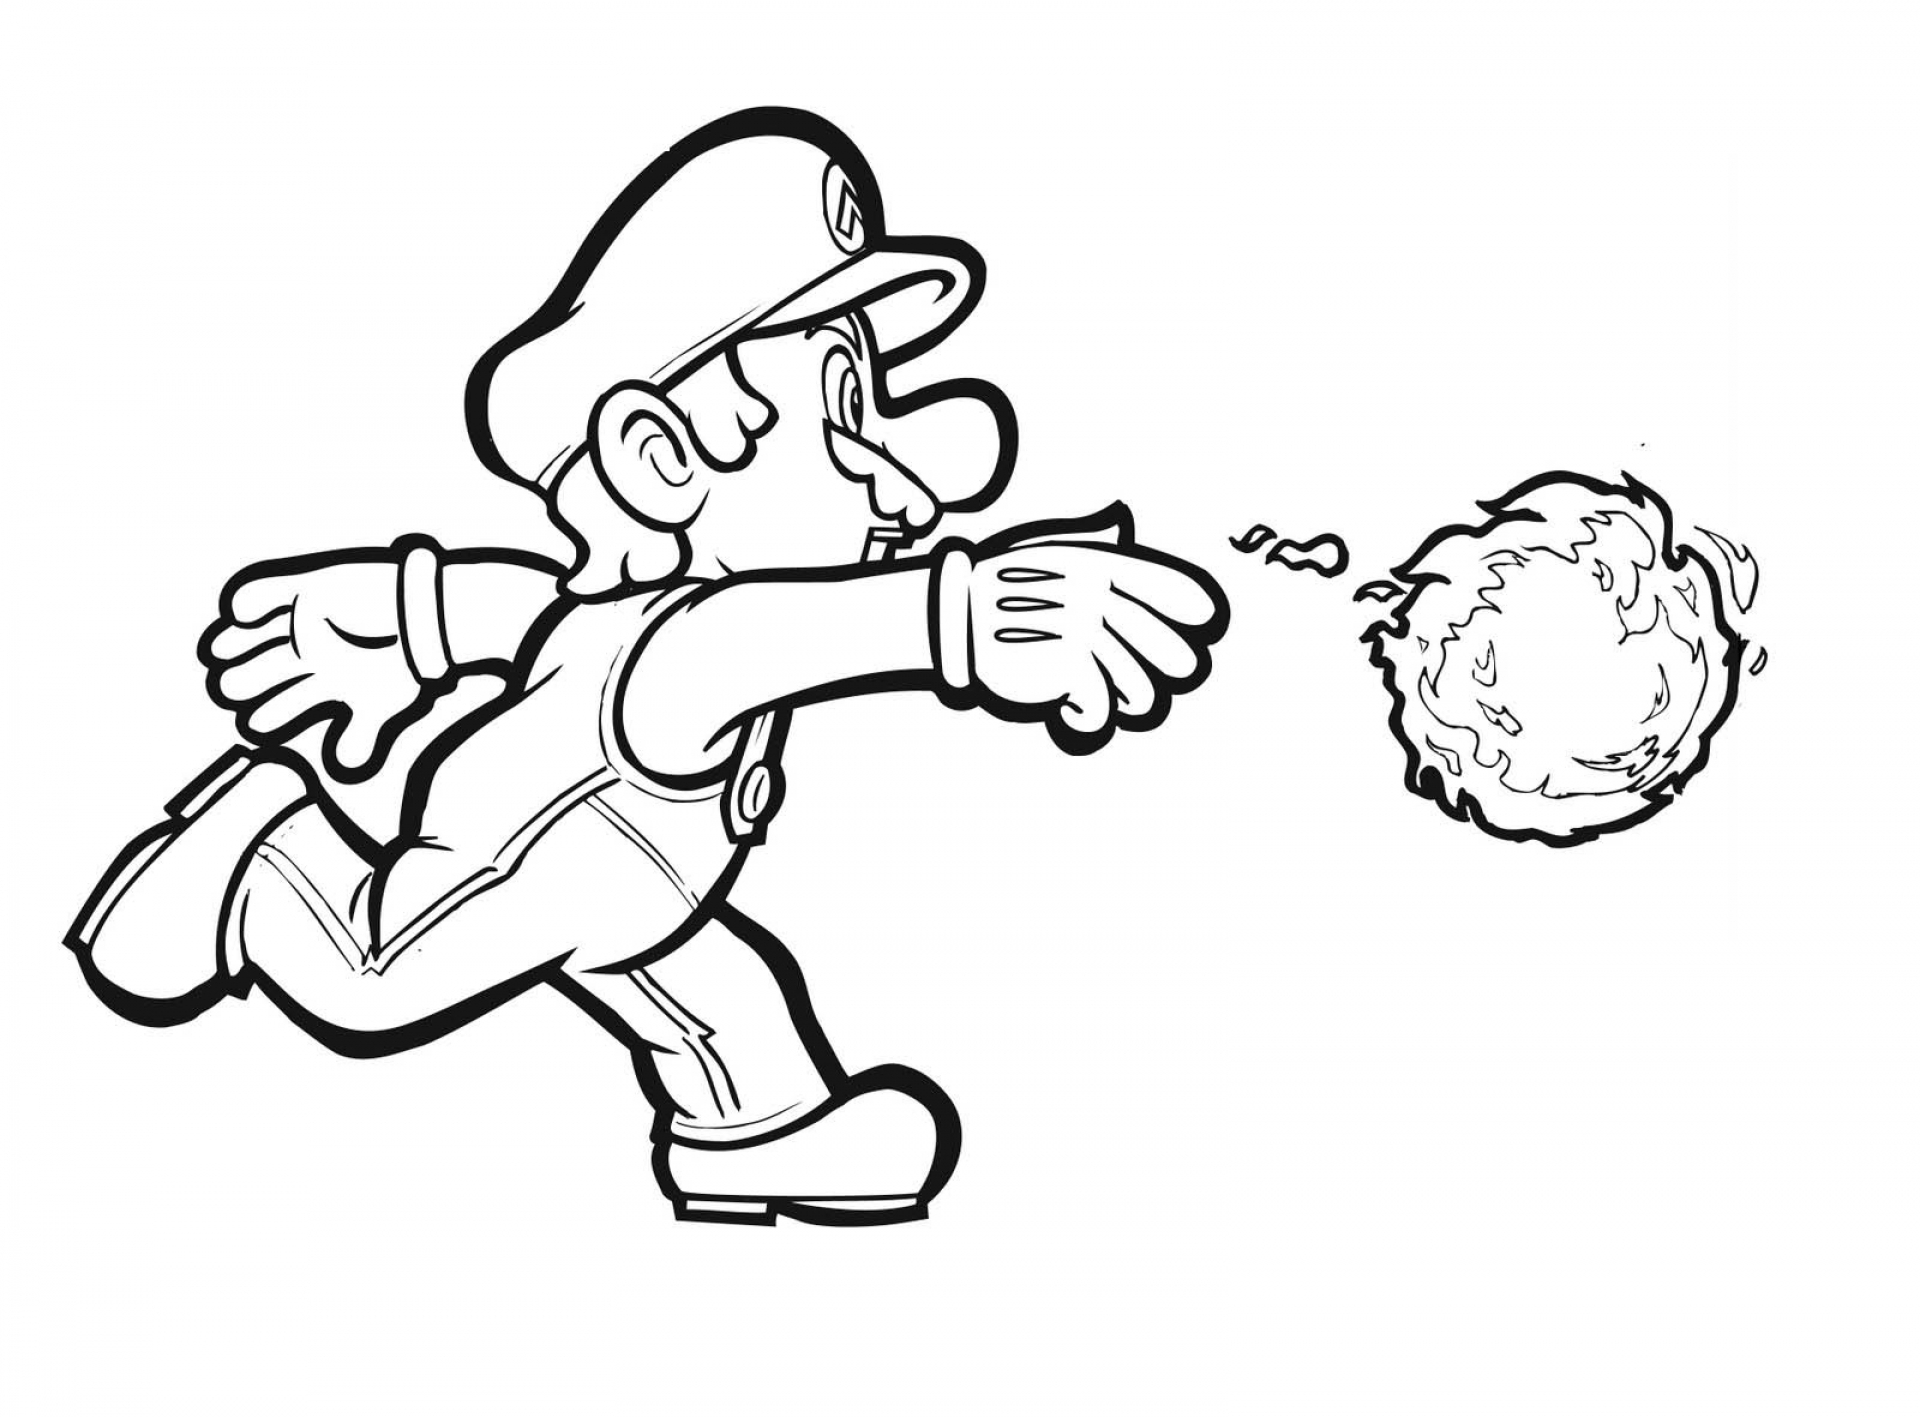 1920x1417 Cool Mario Galaxy Coloring Pages Free Coloring Pages Download